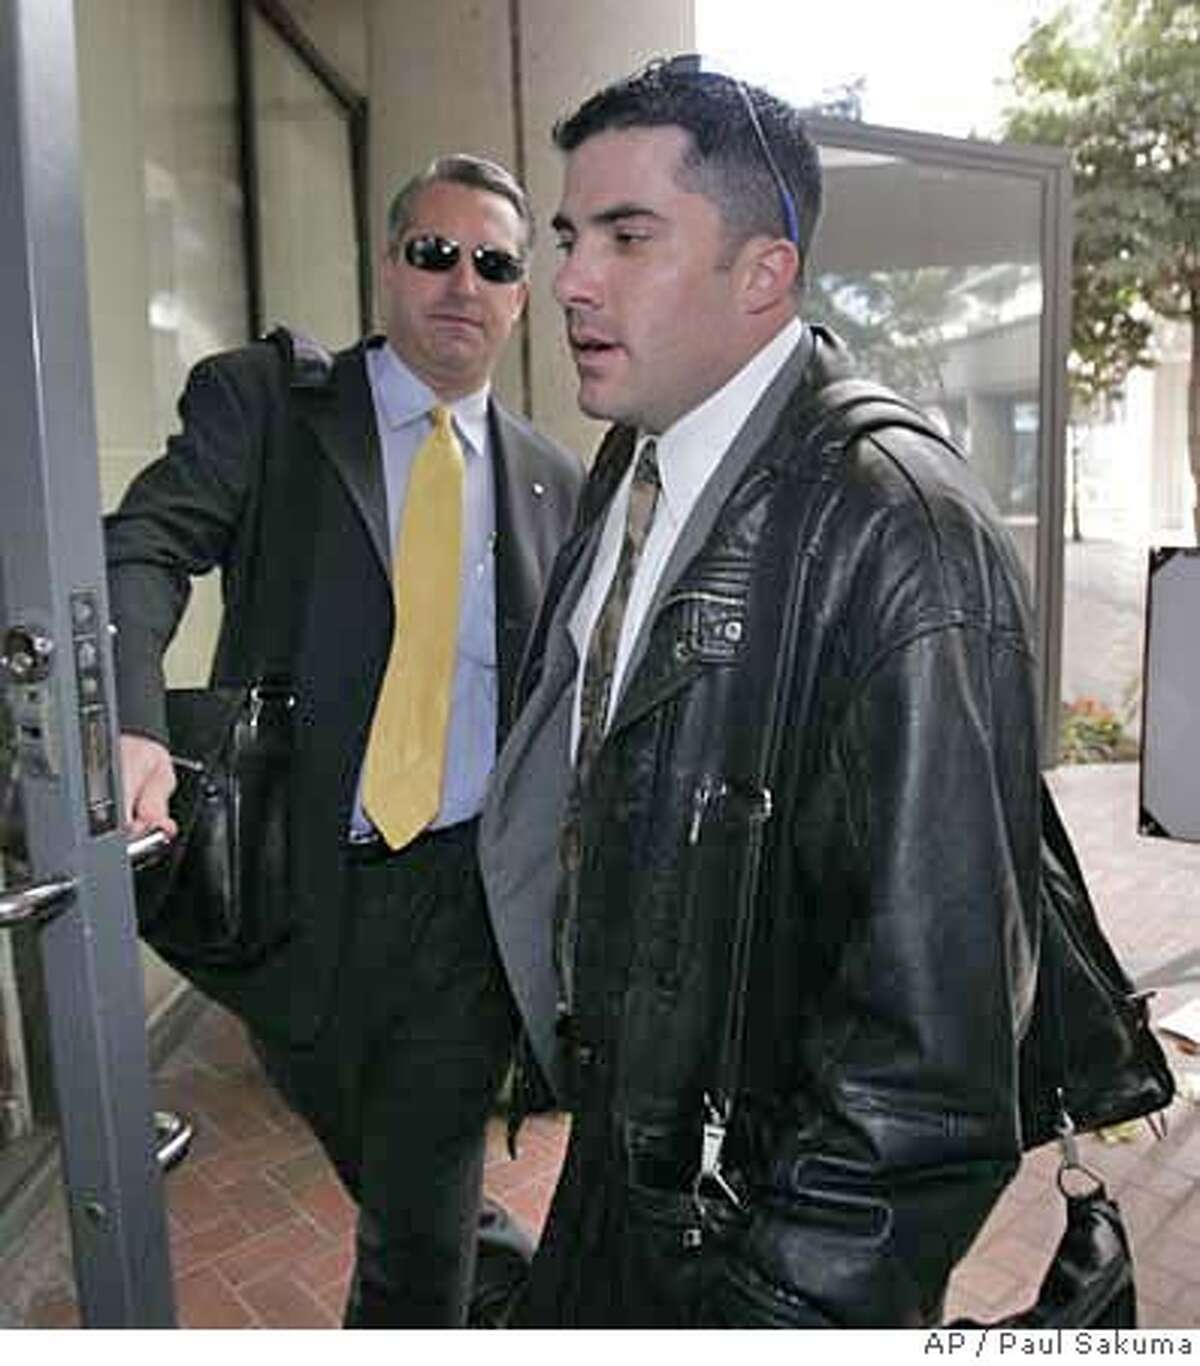 Bryan Wagner , right,of Littleton, Colorado, re-enters a federal courthouse, with his attorney, left, in San Jose, Calif., Friday, Jan. 12, 2007 after he plead guilty to two counts of conspiracy and identity theft. Wagner, a private investigator, was apparently at the bottom of a long chain of command involved in the probe that reached into Hewlett Packard's top ranks. (AP Photo/Paul Sakuma)